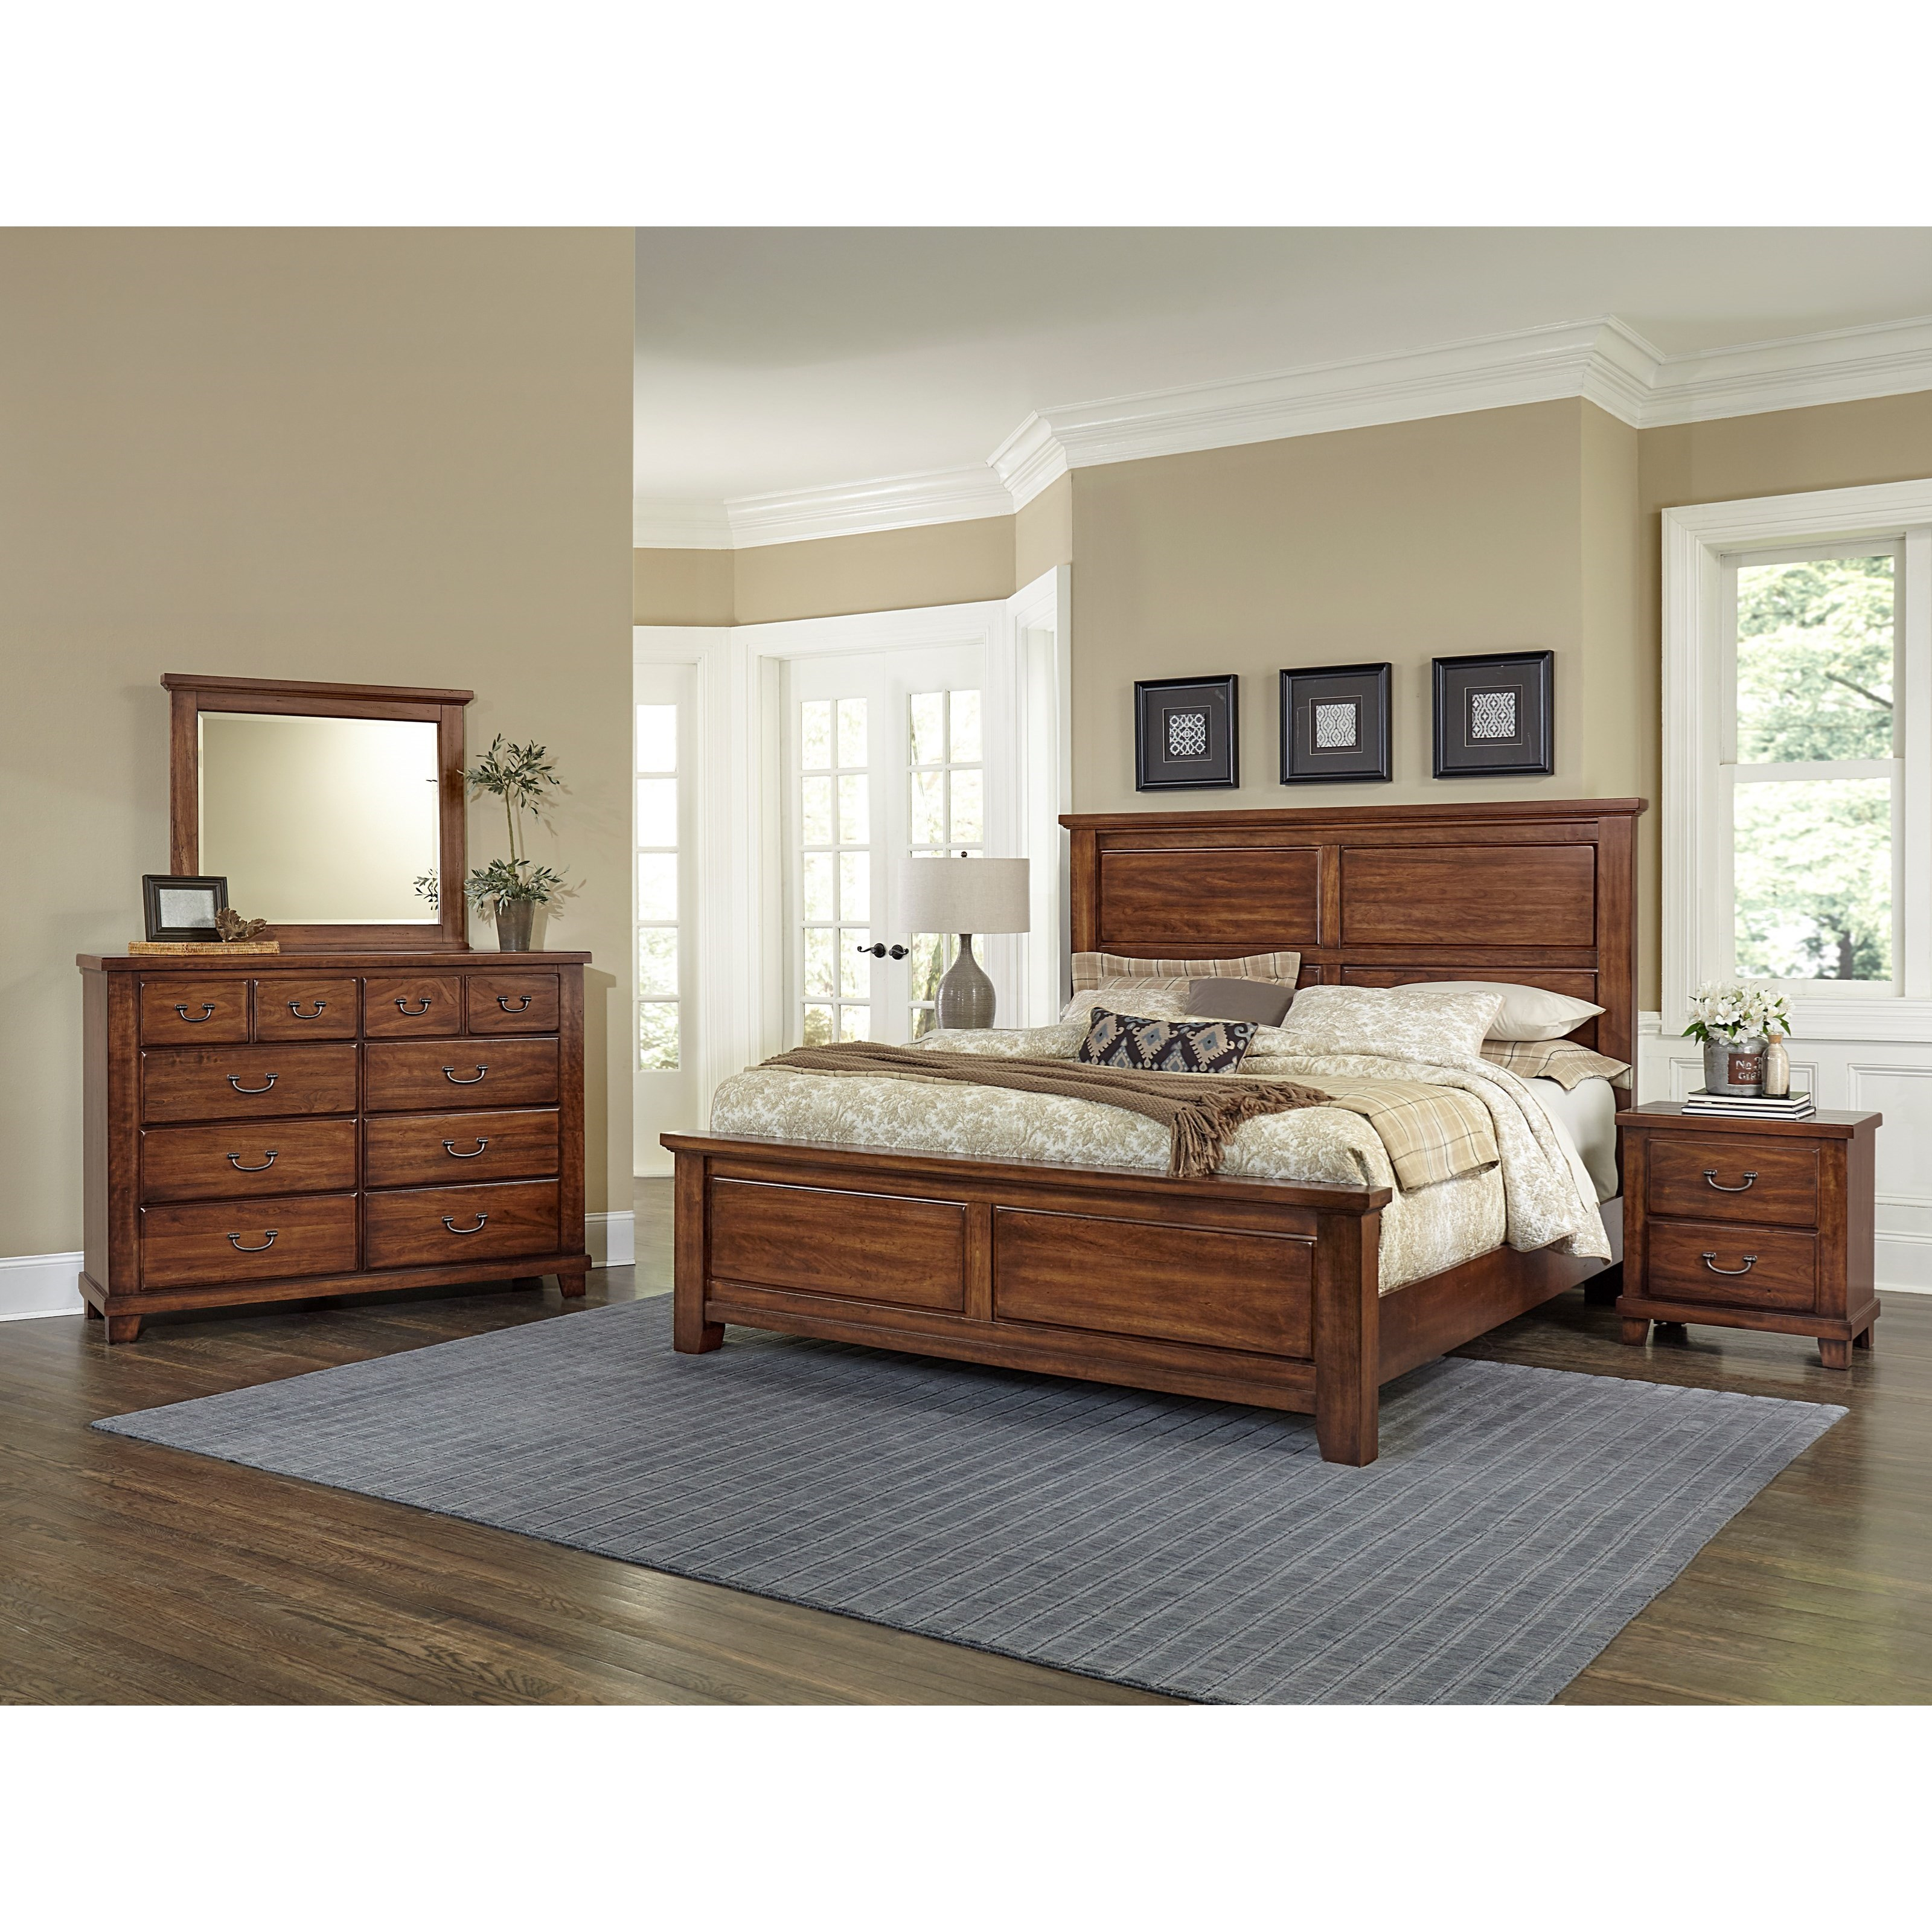 Vaughan Bassett American Cherry Queen Bedroom Group - Item Number: 415 Q Bedroom Group 3